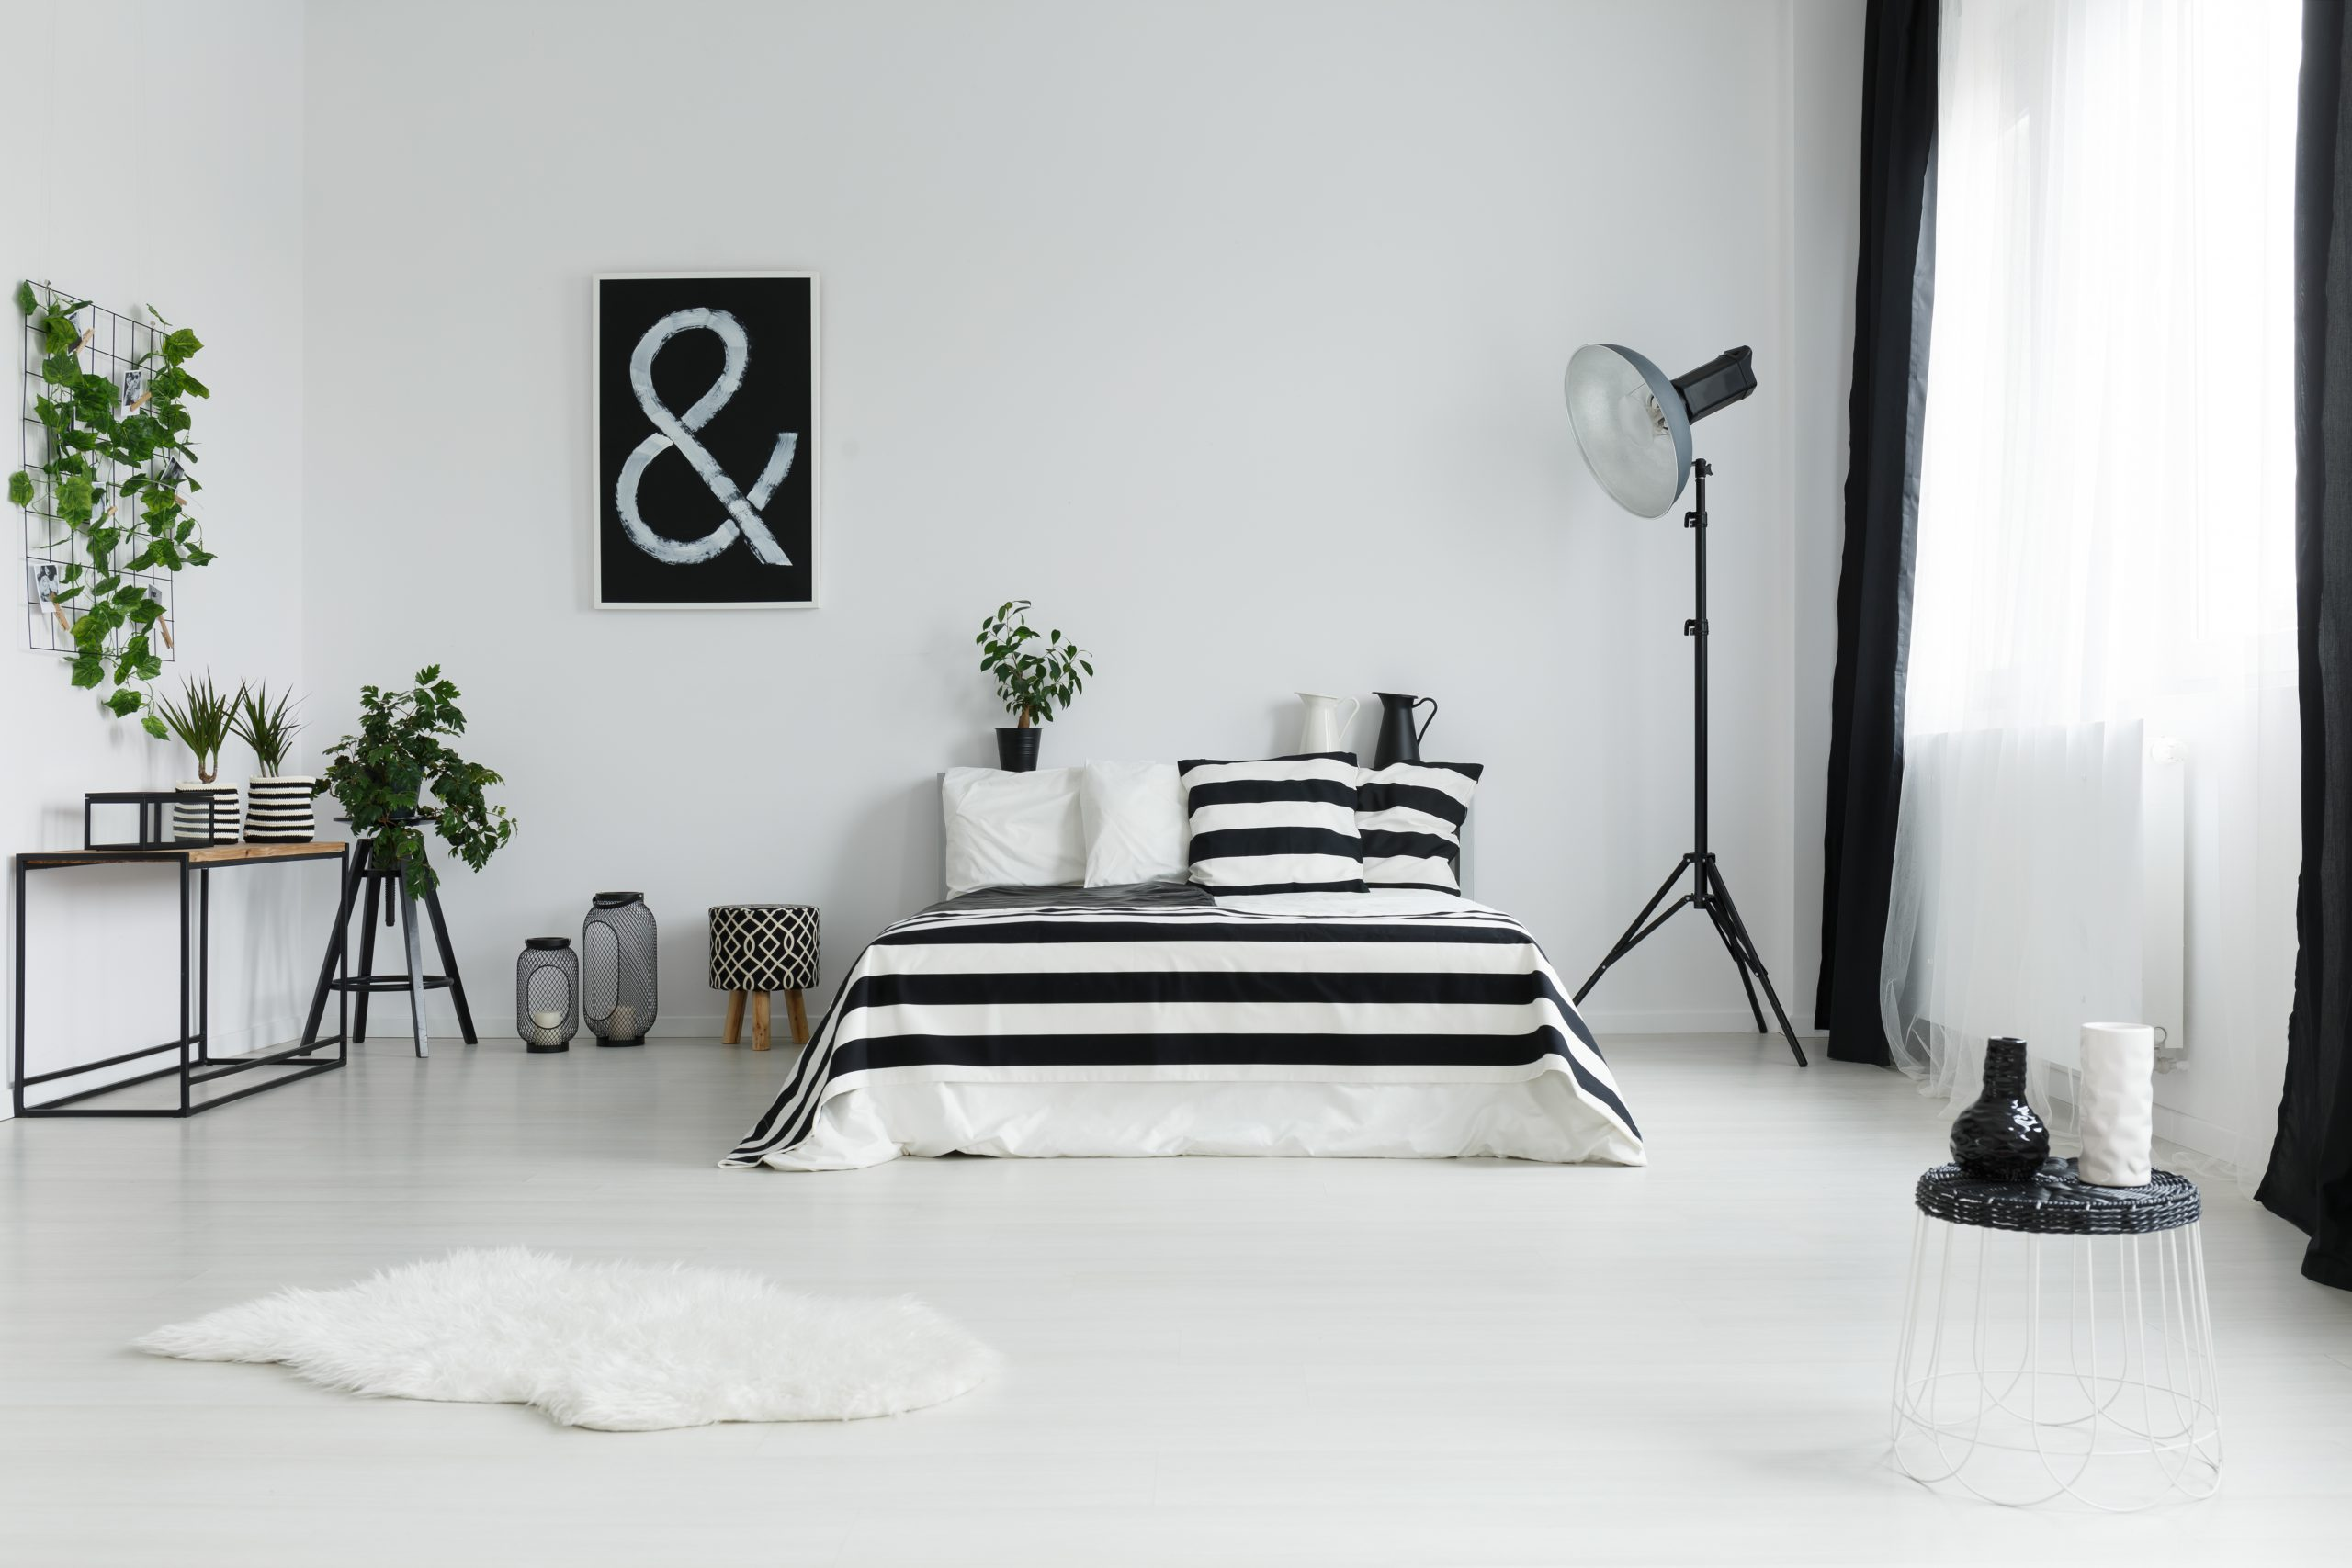 Minimalist bedroom with fur rug and black and white decorations